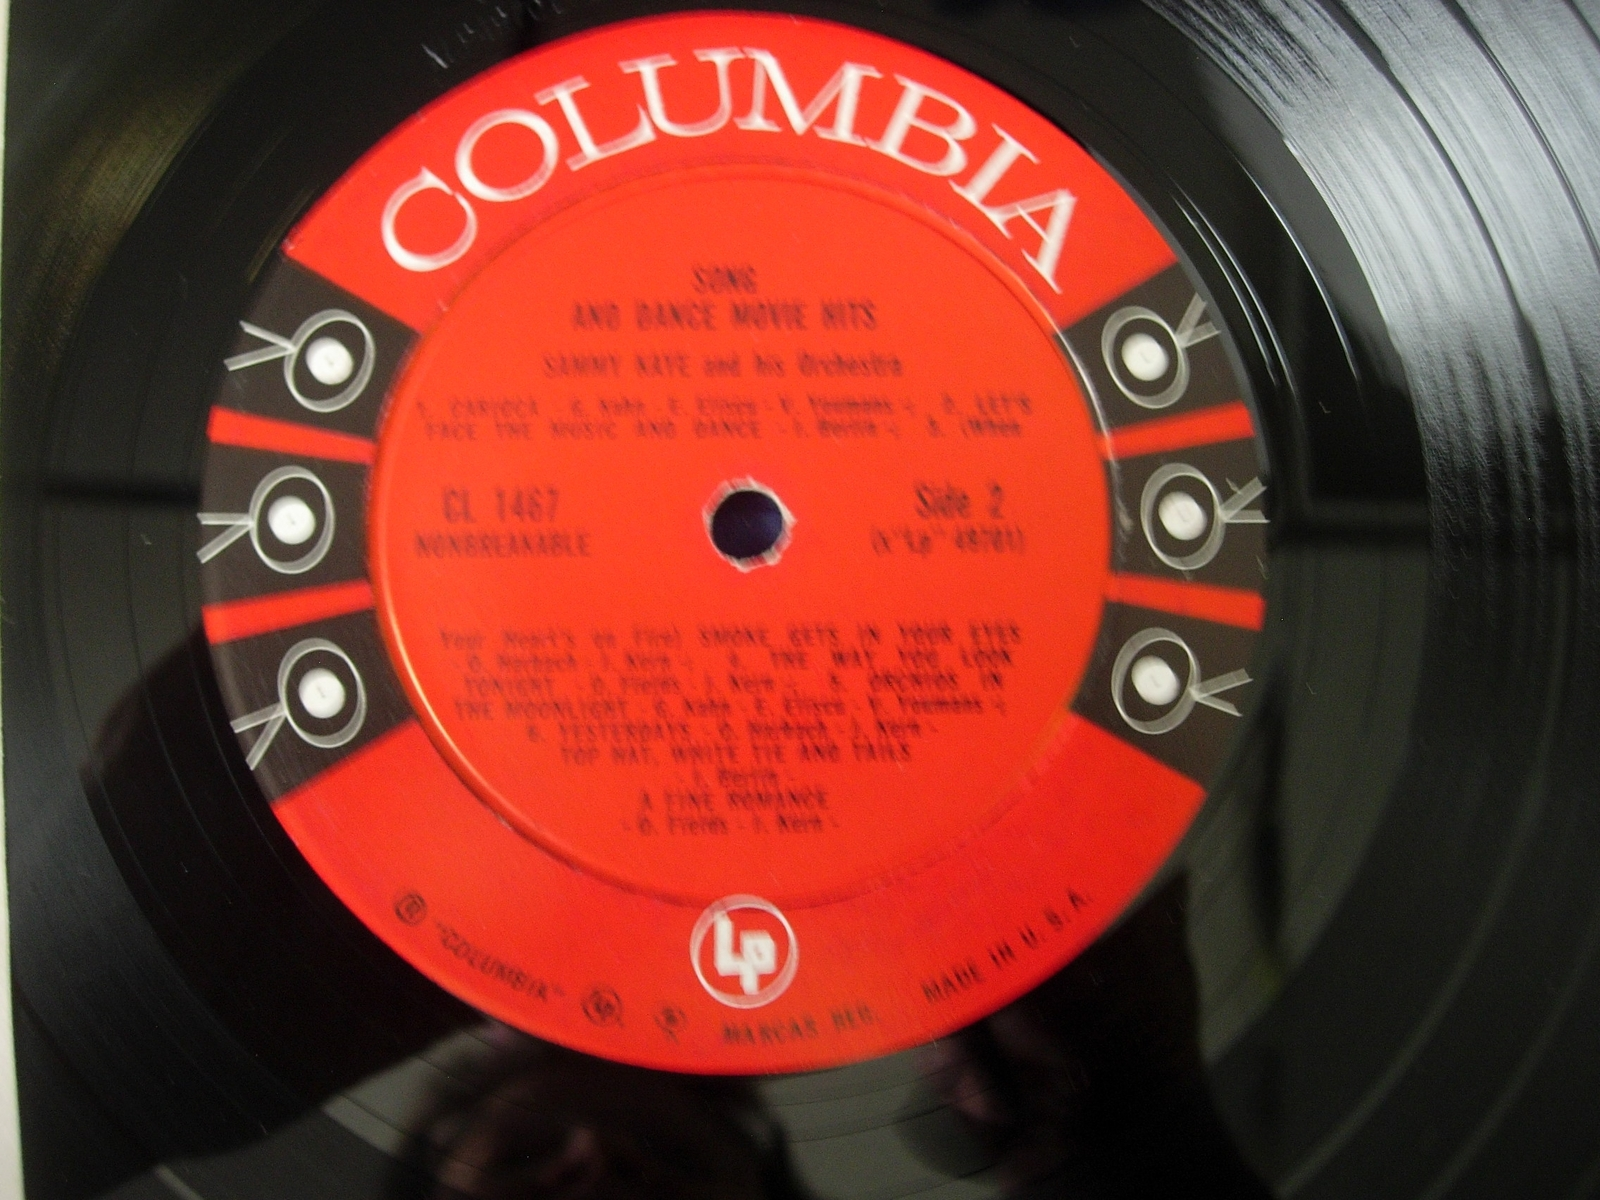 Sammy Kaye - Song and Dance Movie Hits - Columbia Records CL 1467